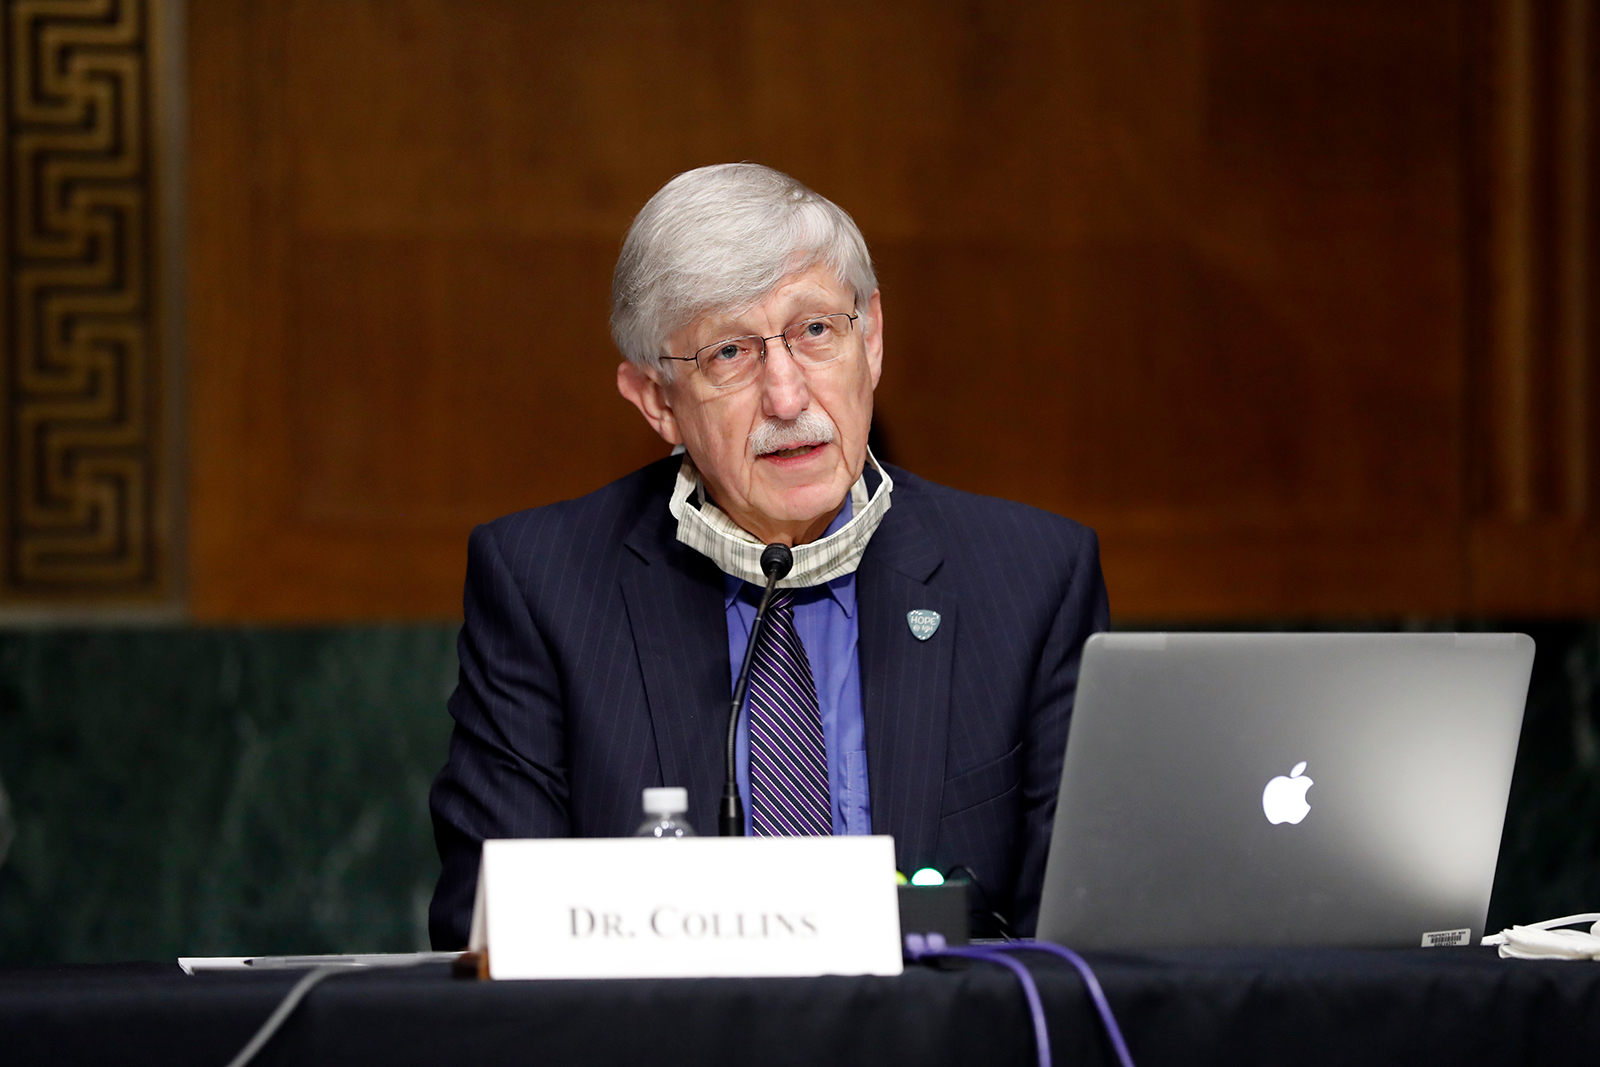 National Institutes of Health Director Dr. Francis Collins listens during a Senate Health Education Labor and Pensions Committee hearing on new coronavirus tests on Capitol Hill in Washington, on May 7.